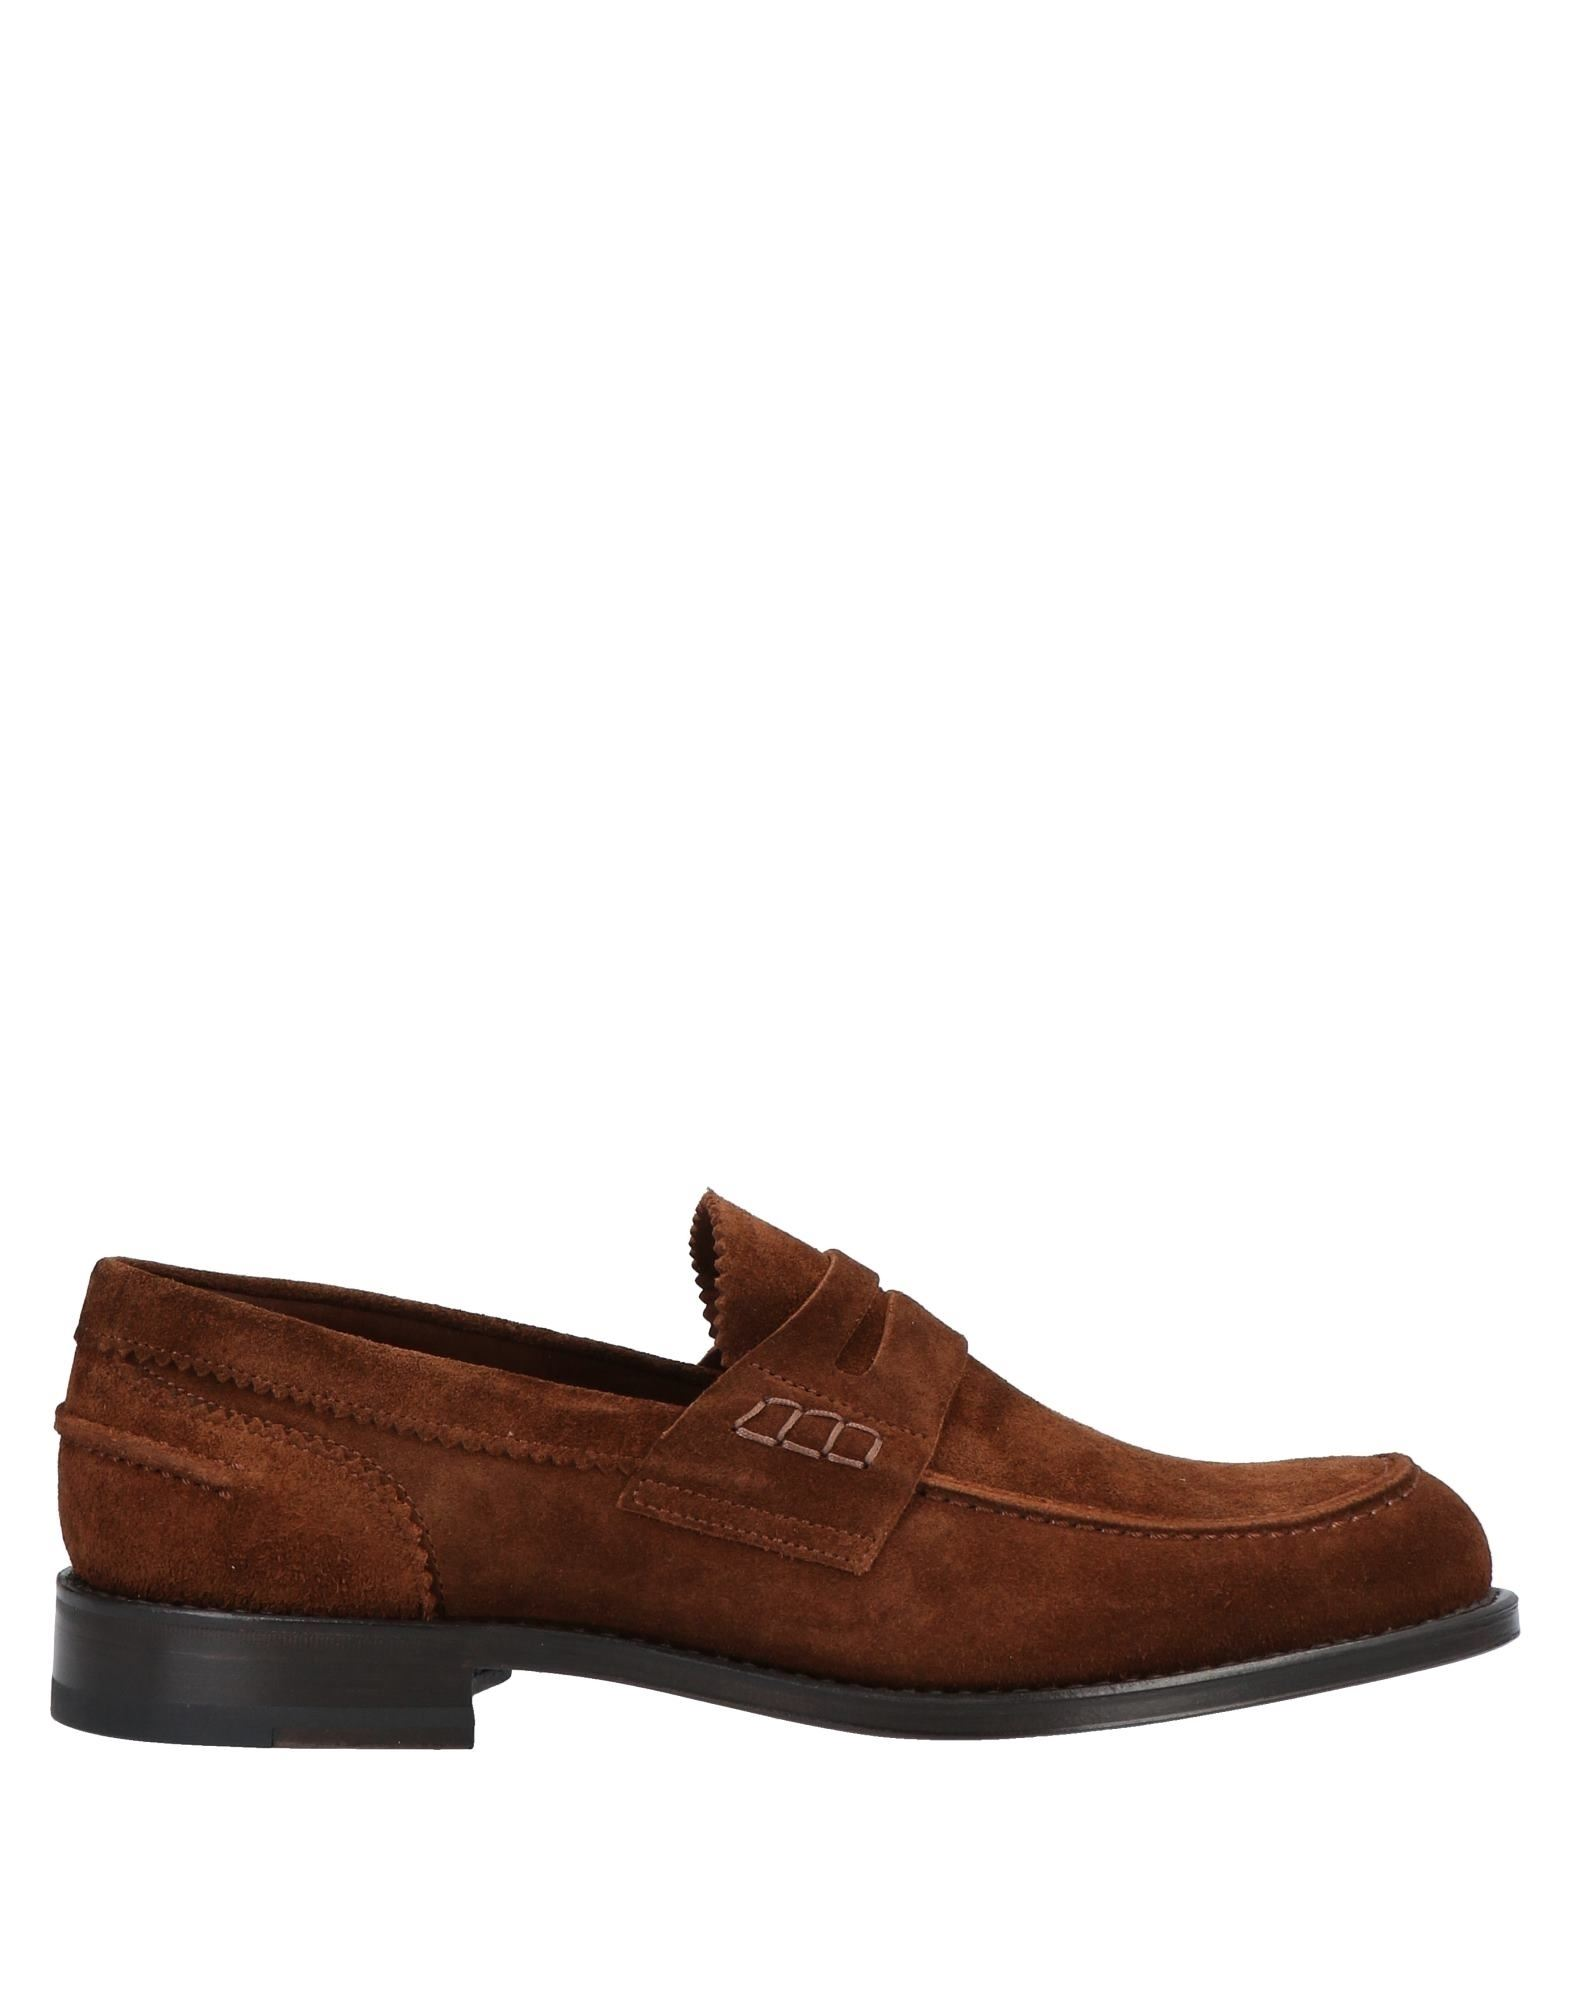 TAGLIATORE Loafers. suede effect, no appliqués, solid color, round toeline, square heel, leather lining, leather/rubber sole, contains non-textile parts of animal origin. Soft Leather